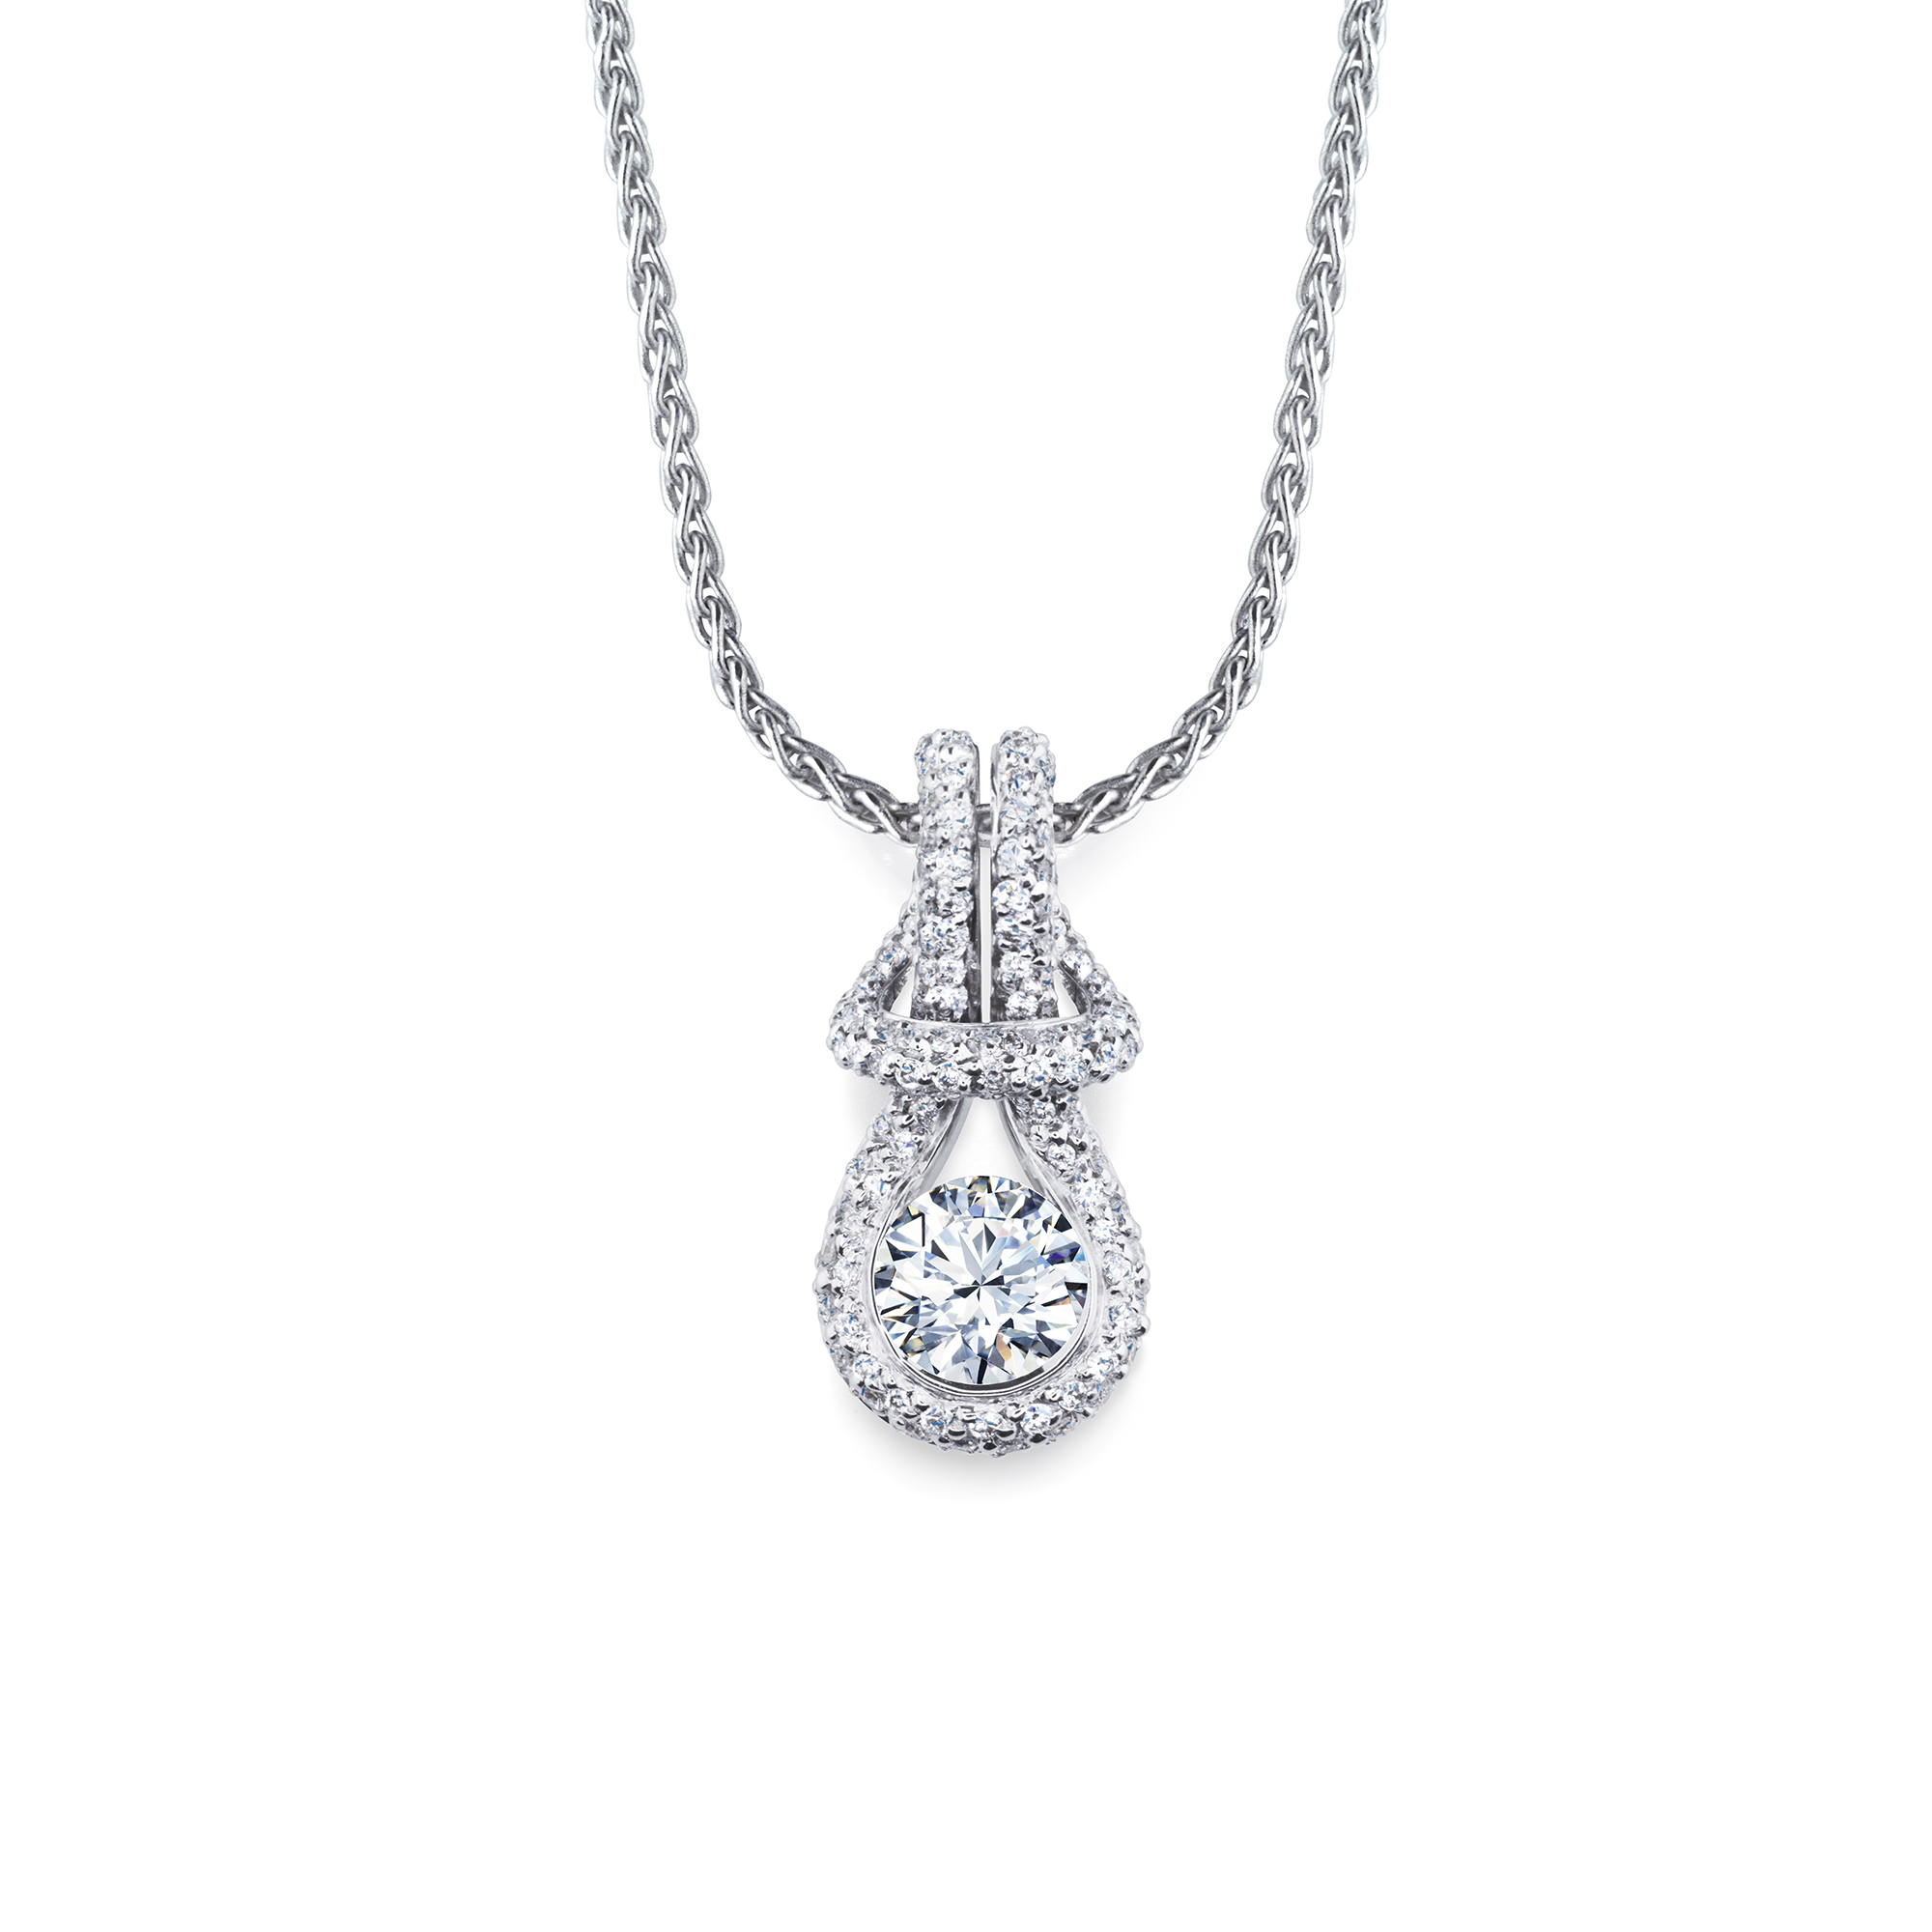 Forevermark Encordia Pave Solitaire Diamond Necklace